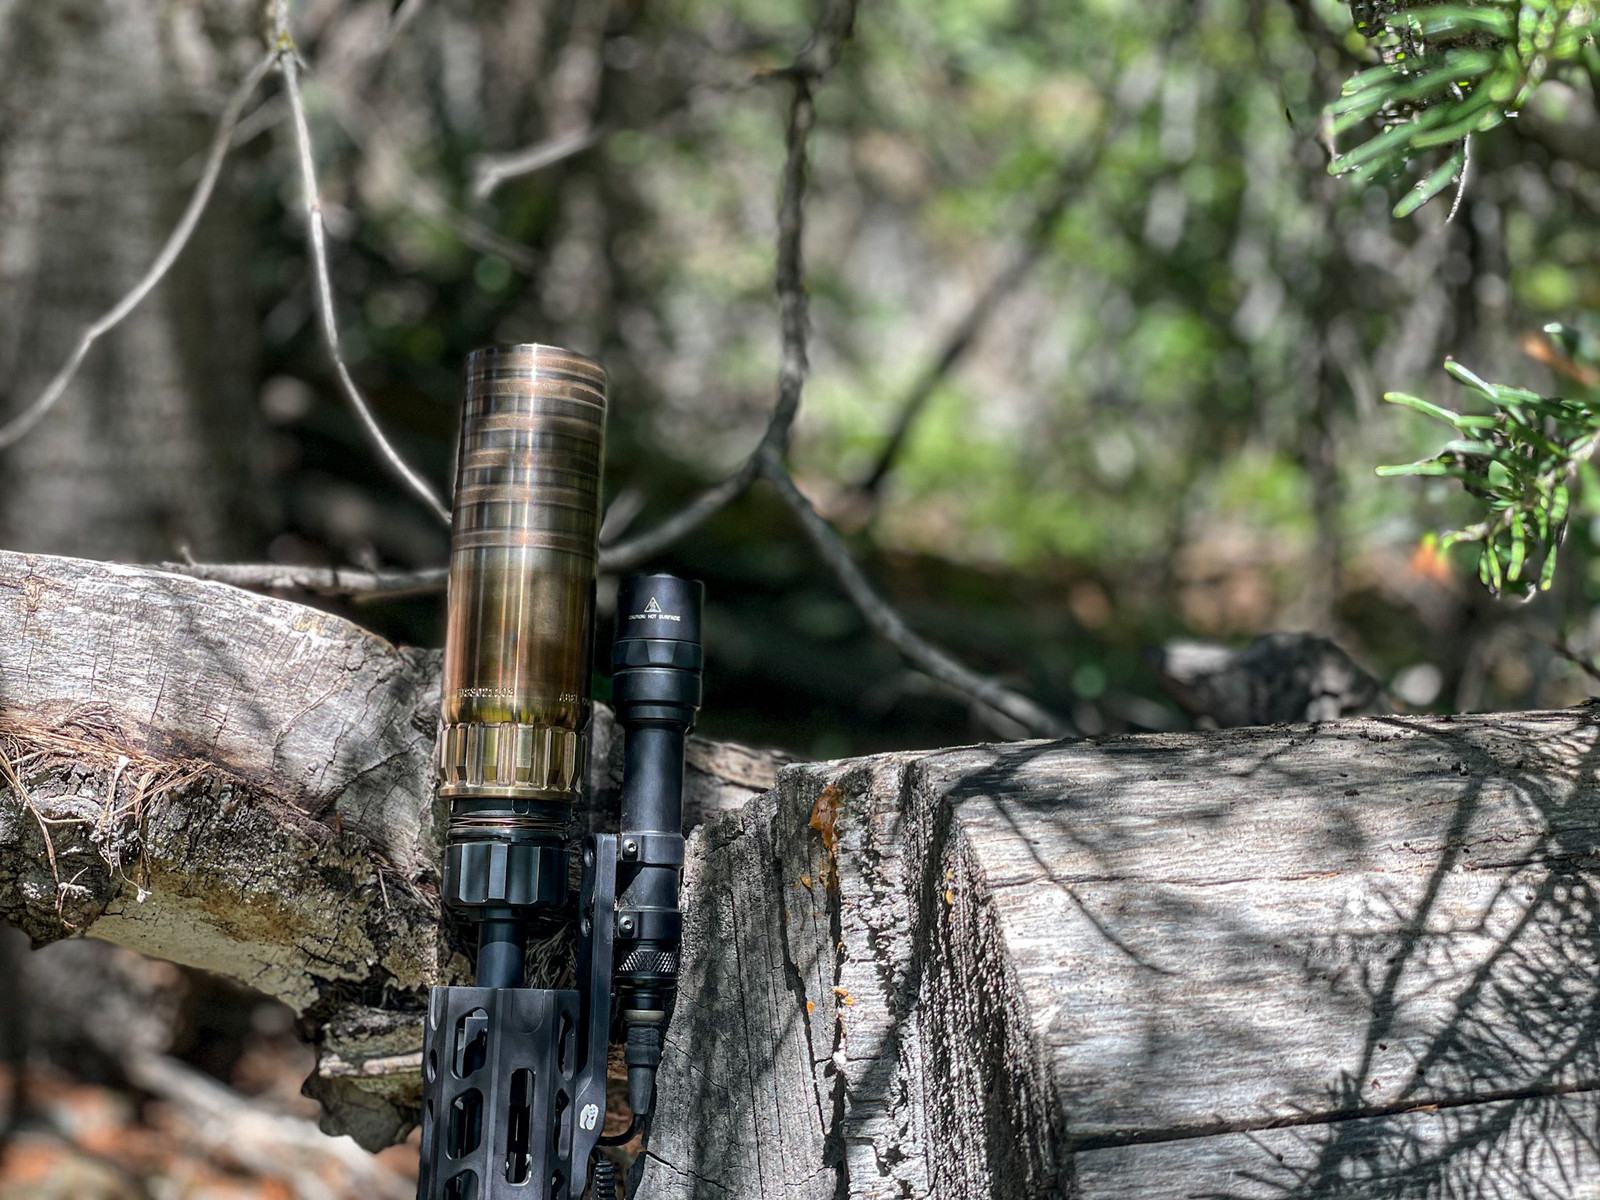 Picture of Abel Company's Biscuit mounted on a firearm leaning up against a log in the forest.